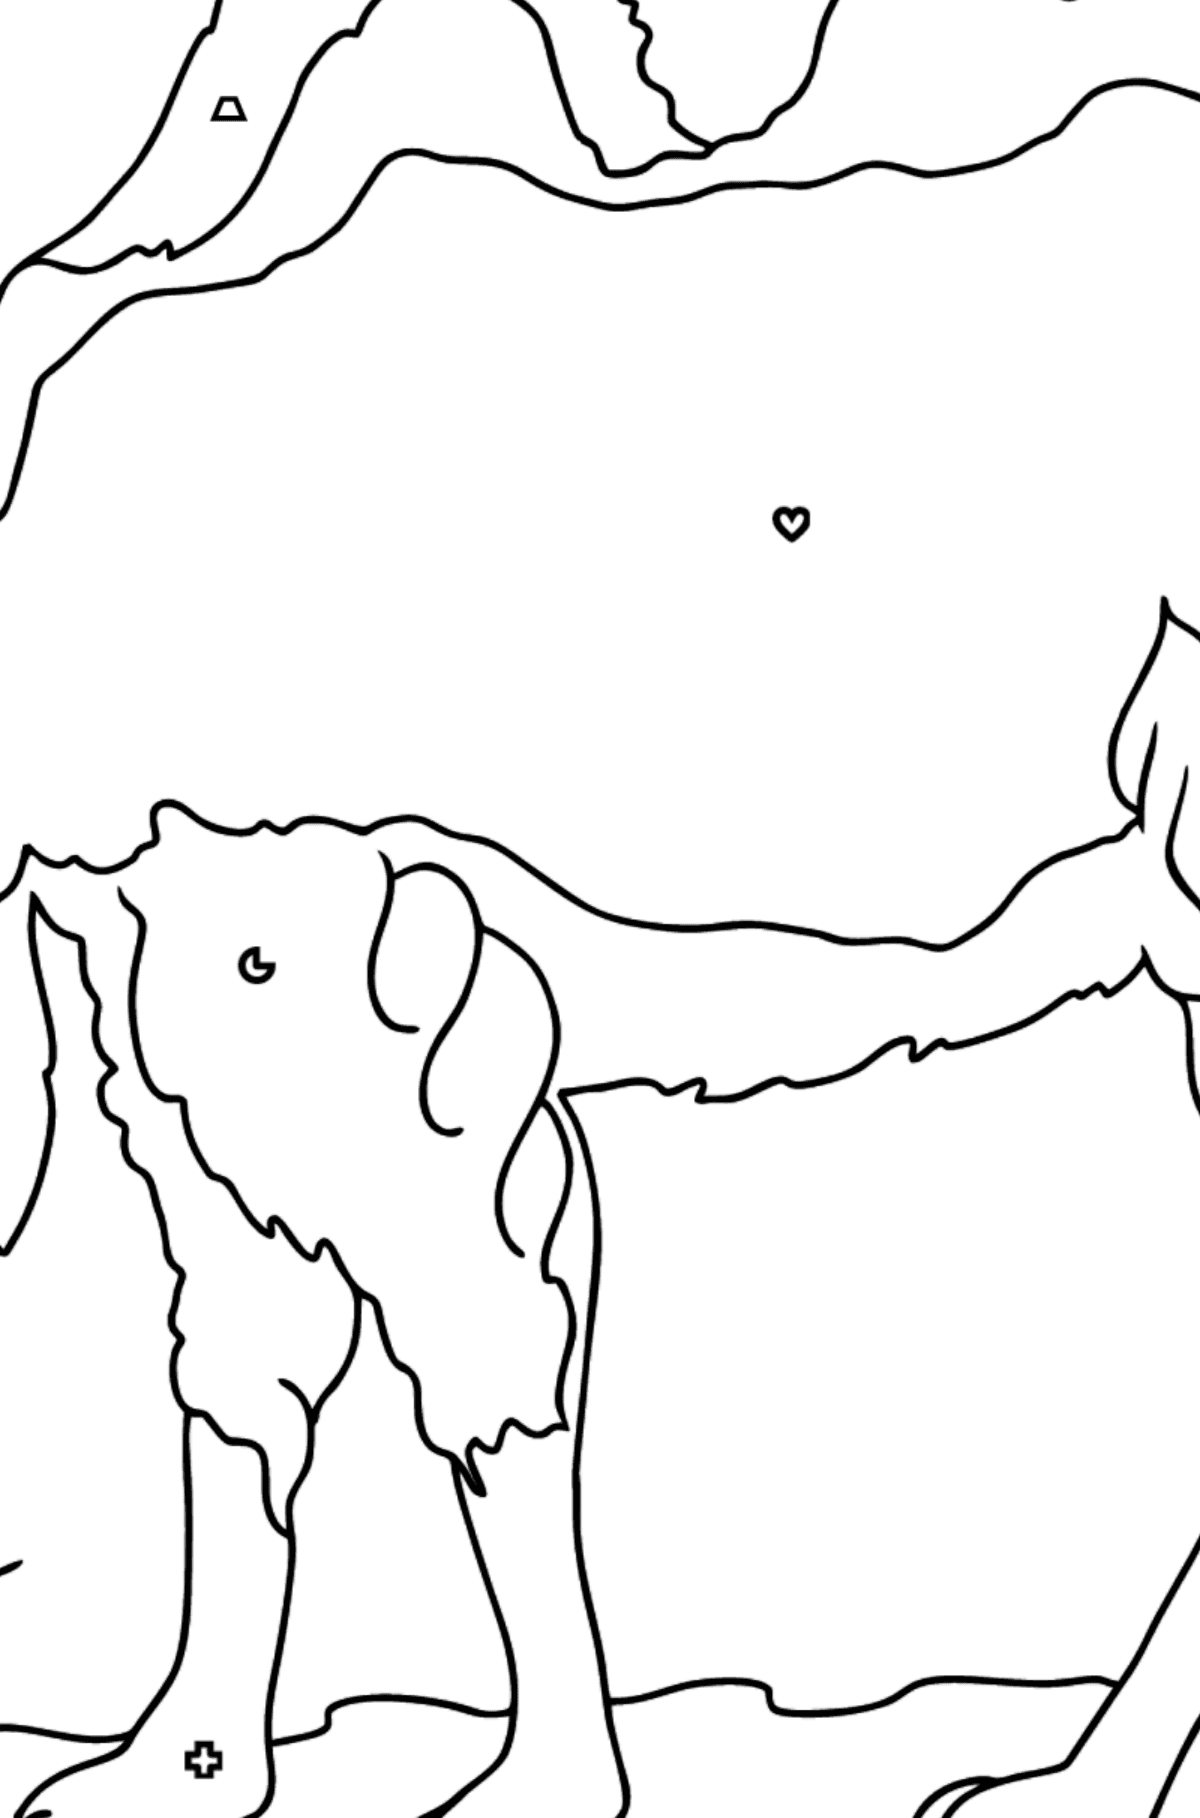 A Camel with Two Humped Coloring Page - Coloring by Geometric Shapes for Kids